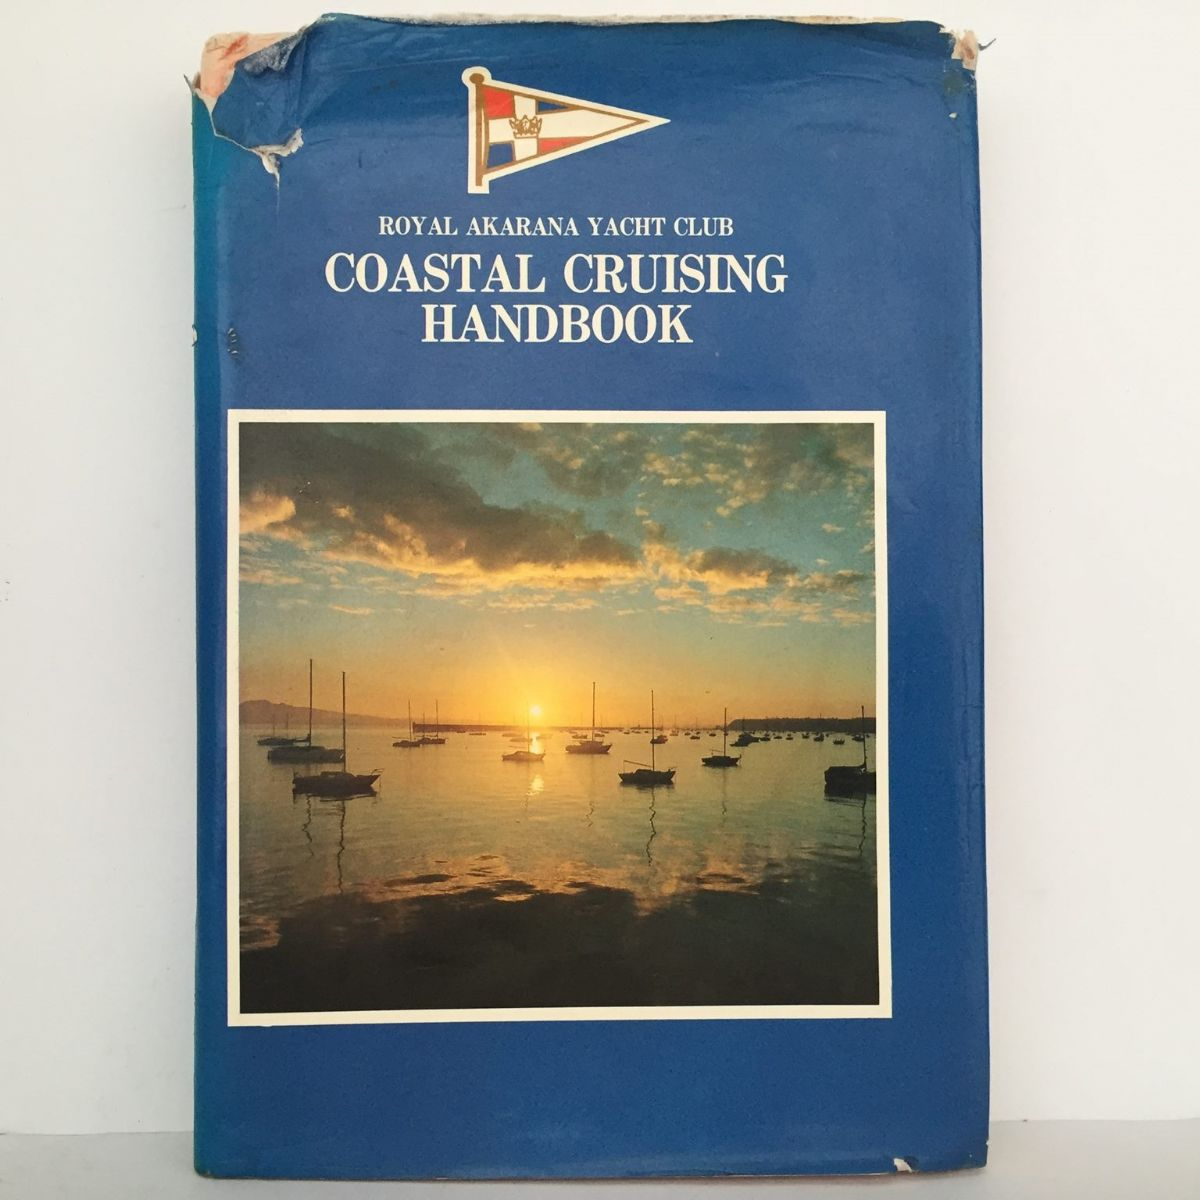 Royal Akarana Yacht Club Coastal Cruising Handbook 1982